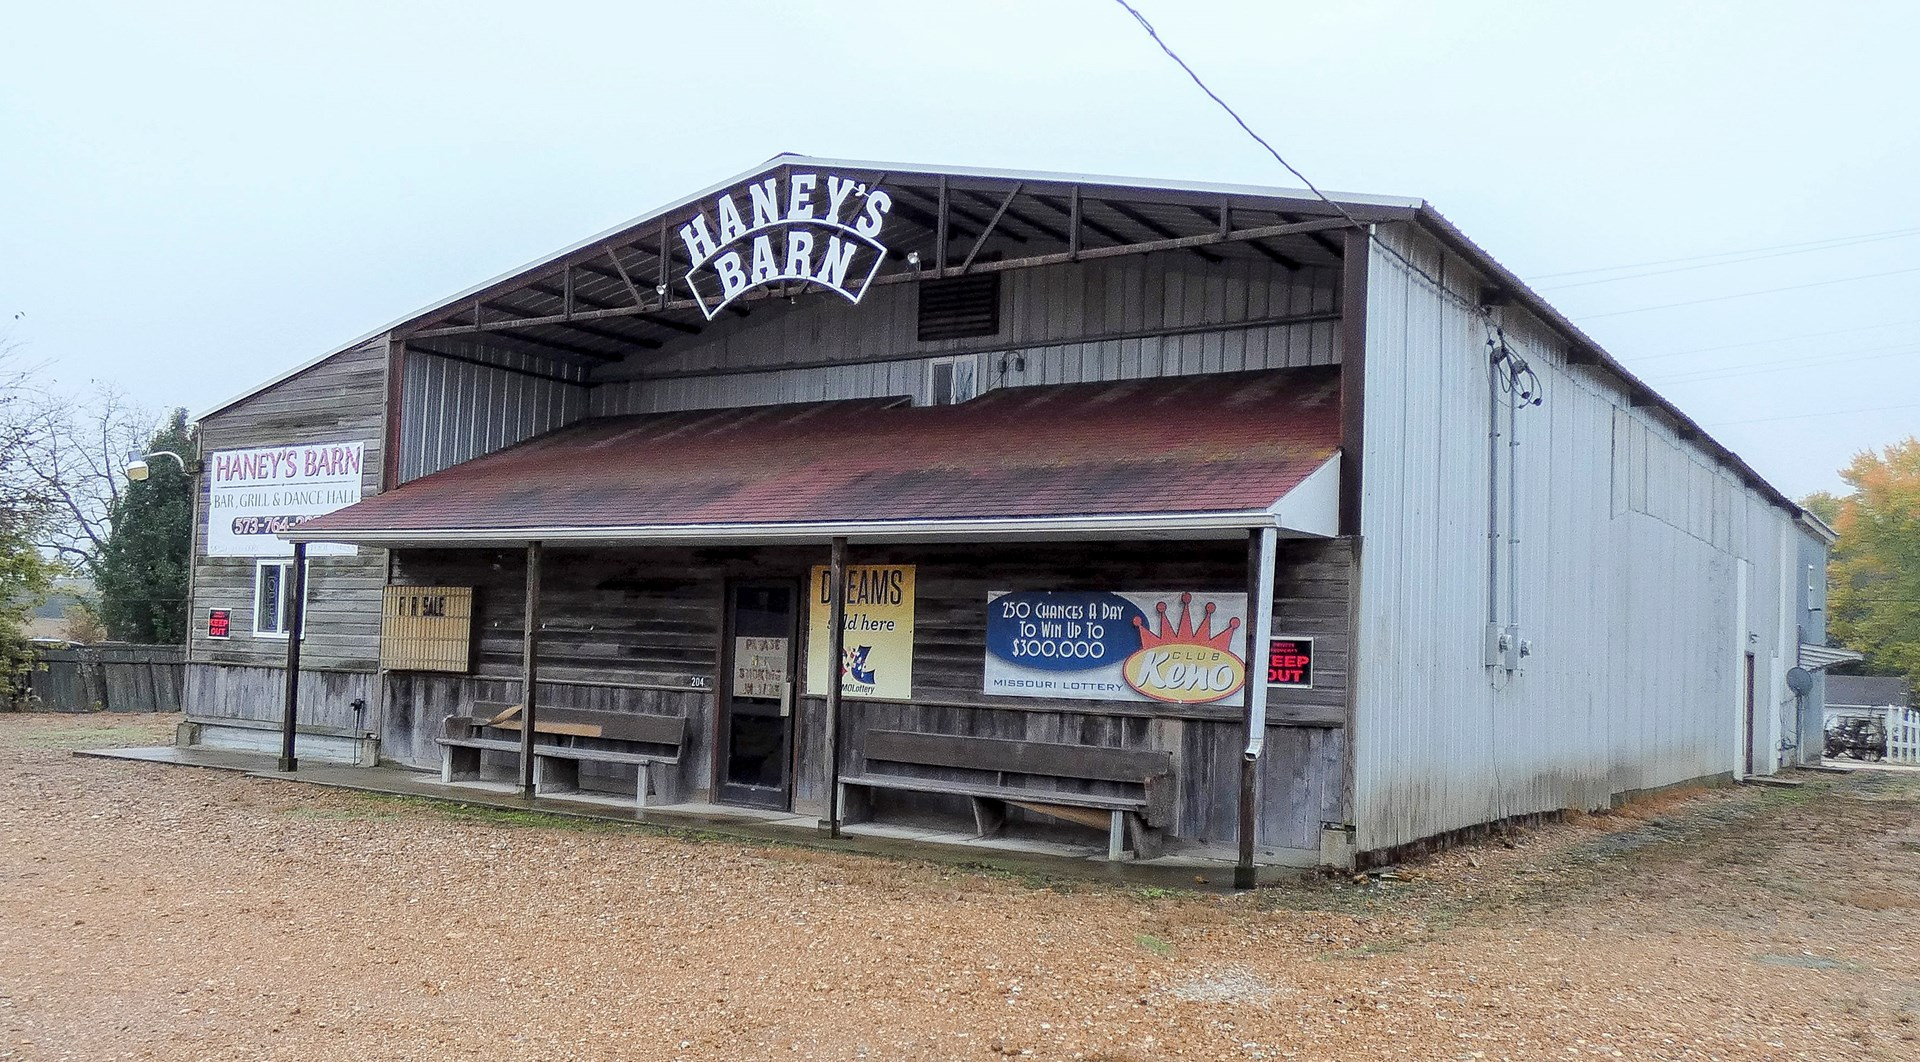 Furnished Bar, Dance Hall, Restaurant For Sale in Rosebud MO